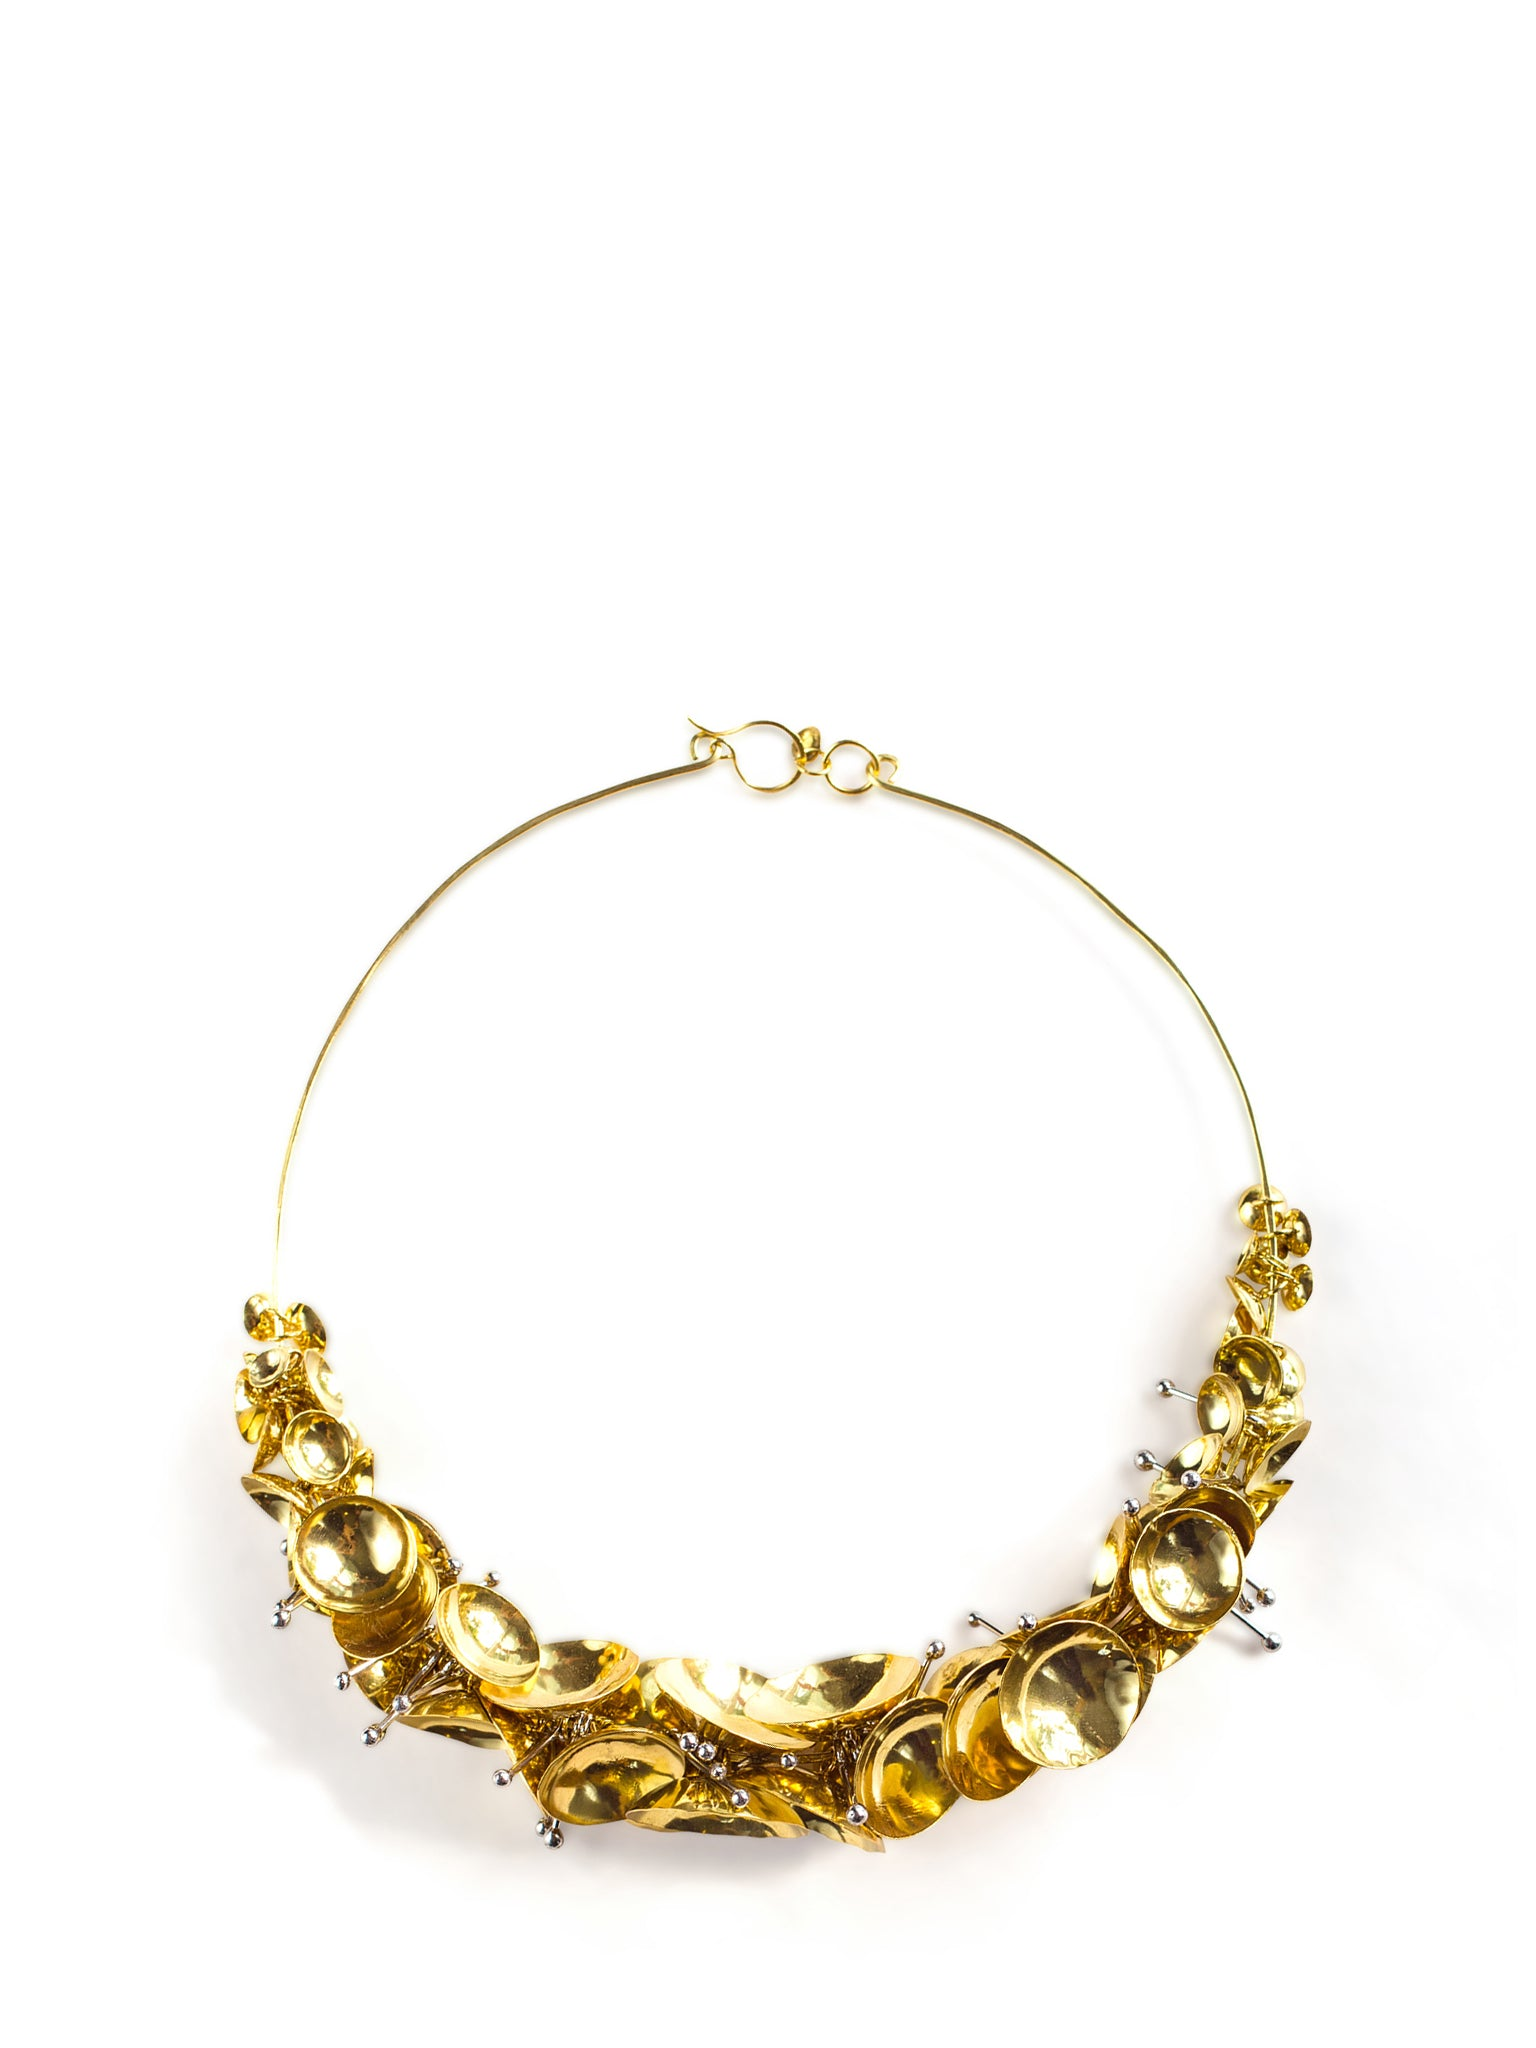 ECHO CHIC - Diva necklace